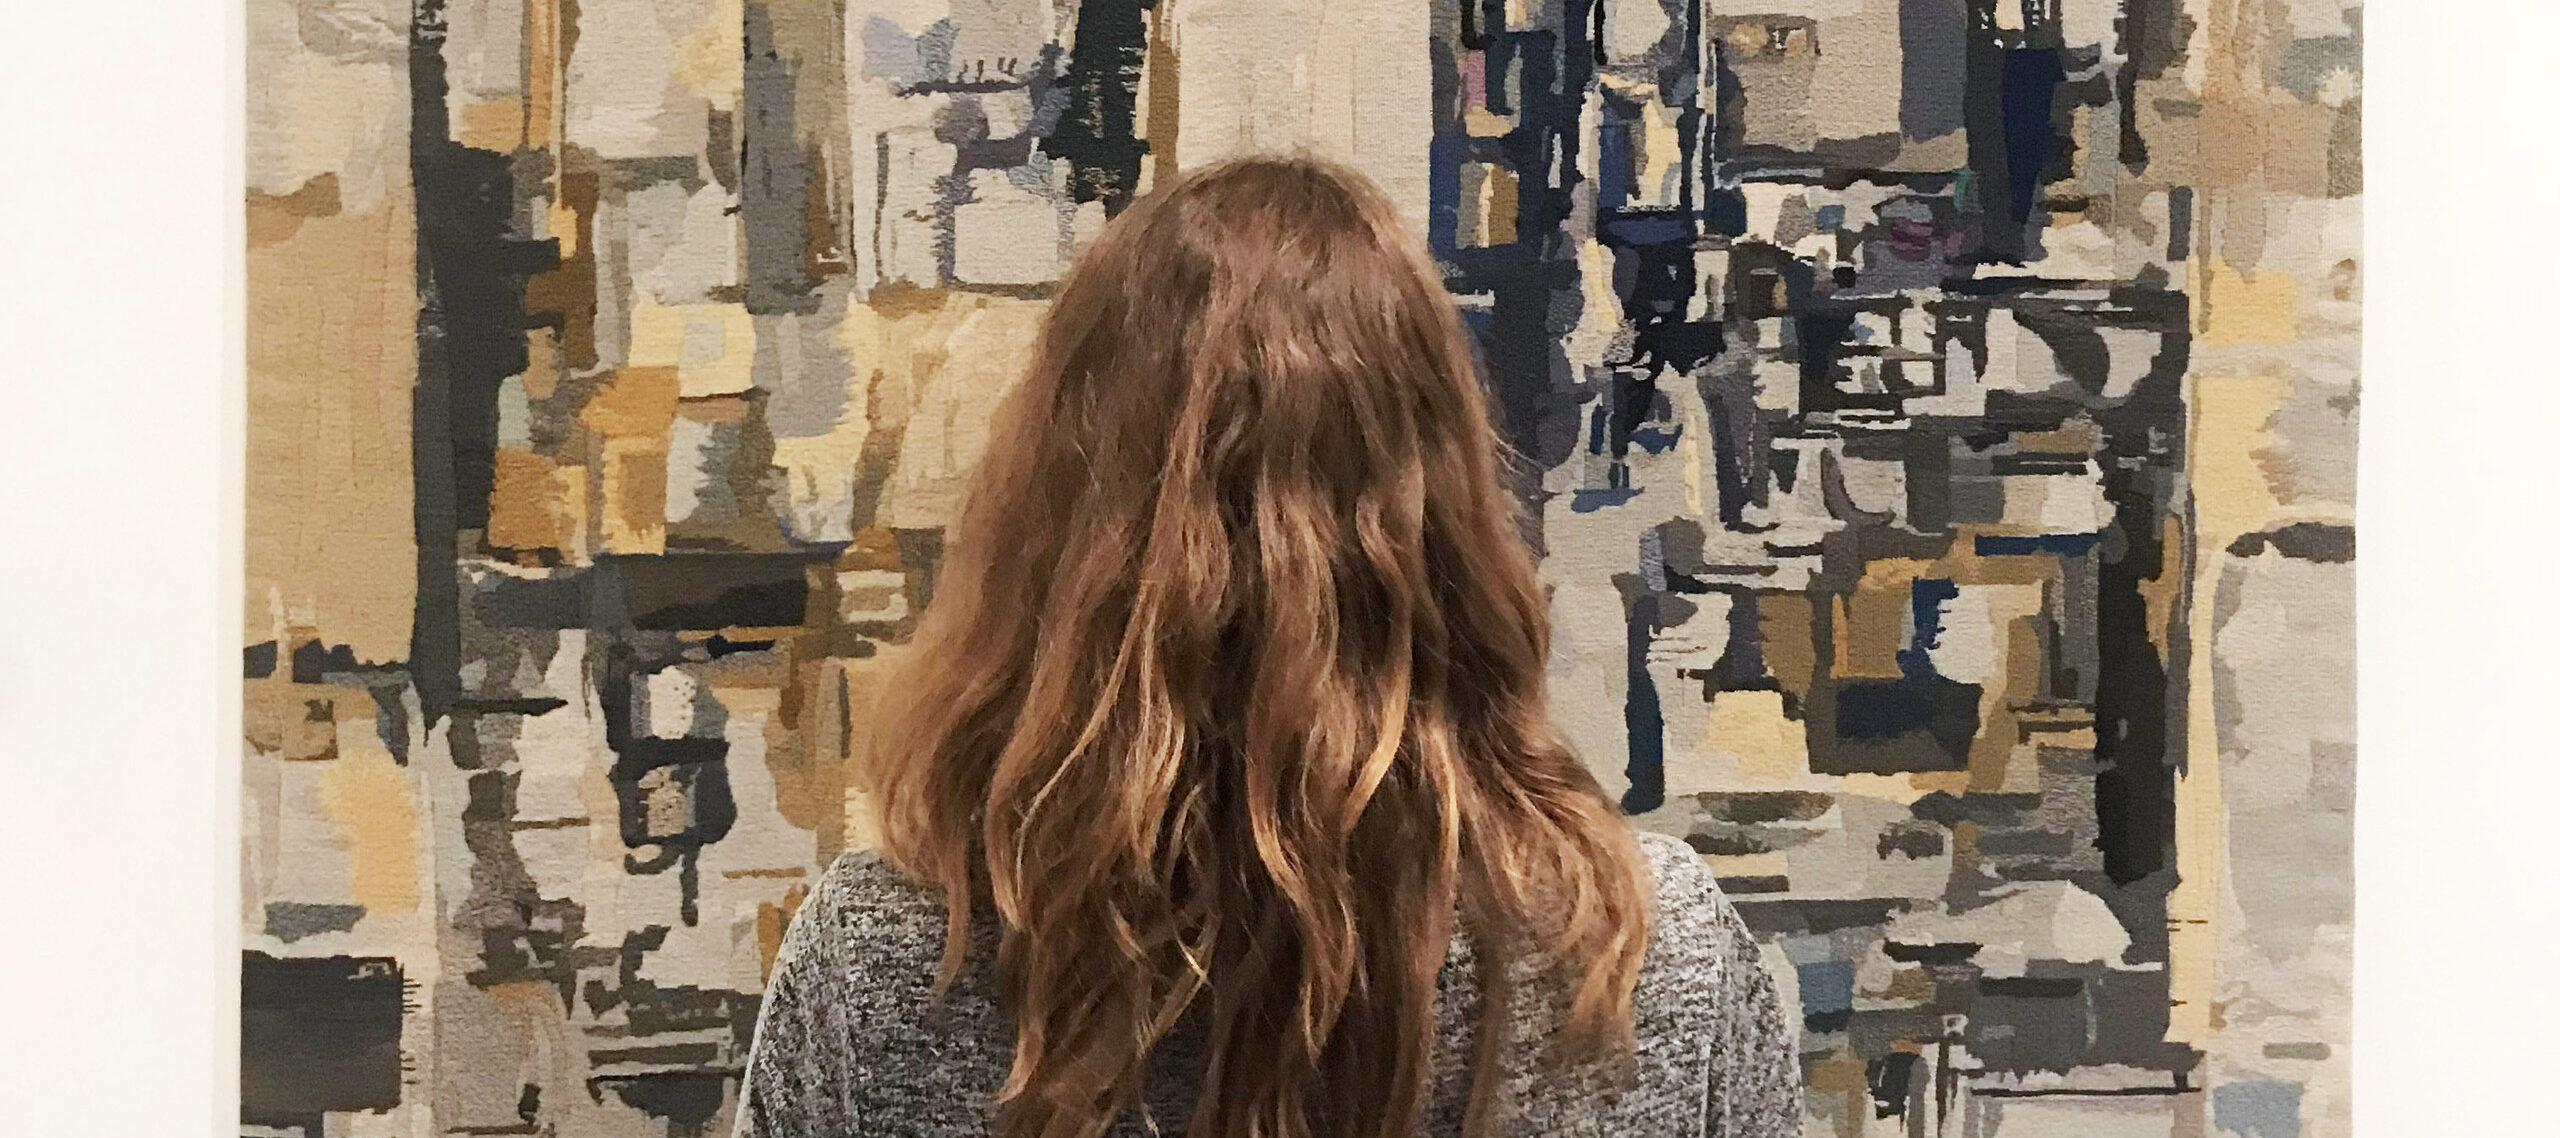 A light-skinned adult woman in a gray dress with medium-length, wavy, brown hair is seen from behind, standing and facing a large, abstract painting. The painting depicts blurry, layered rectangles and squares in shades of gray, taupe, and black, layered and appearing to recede.